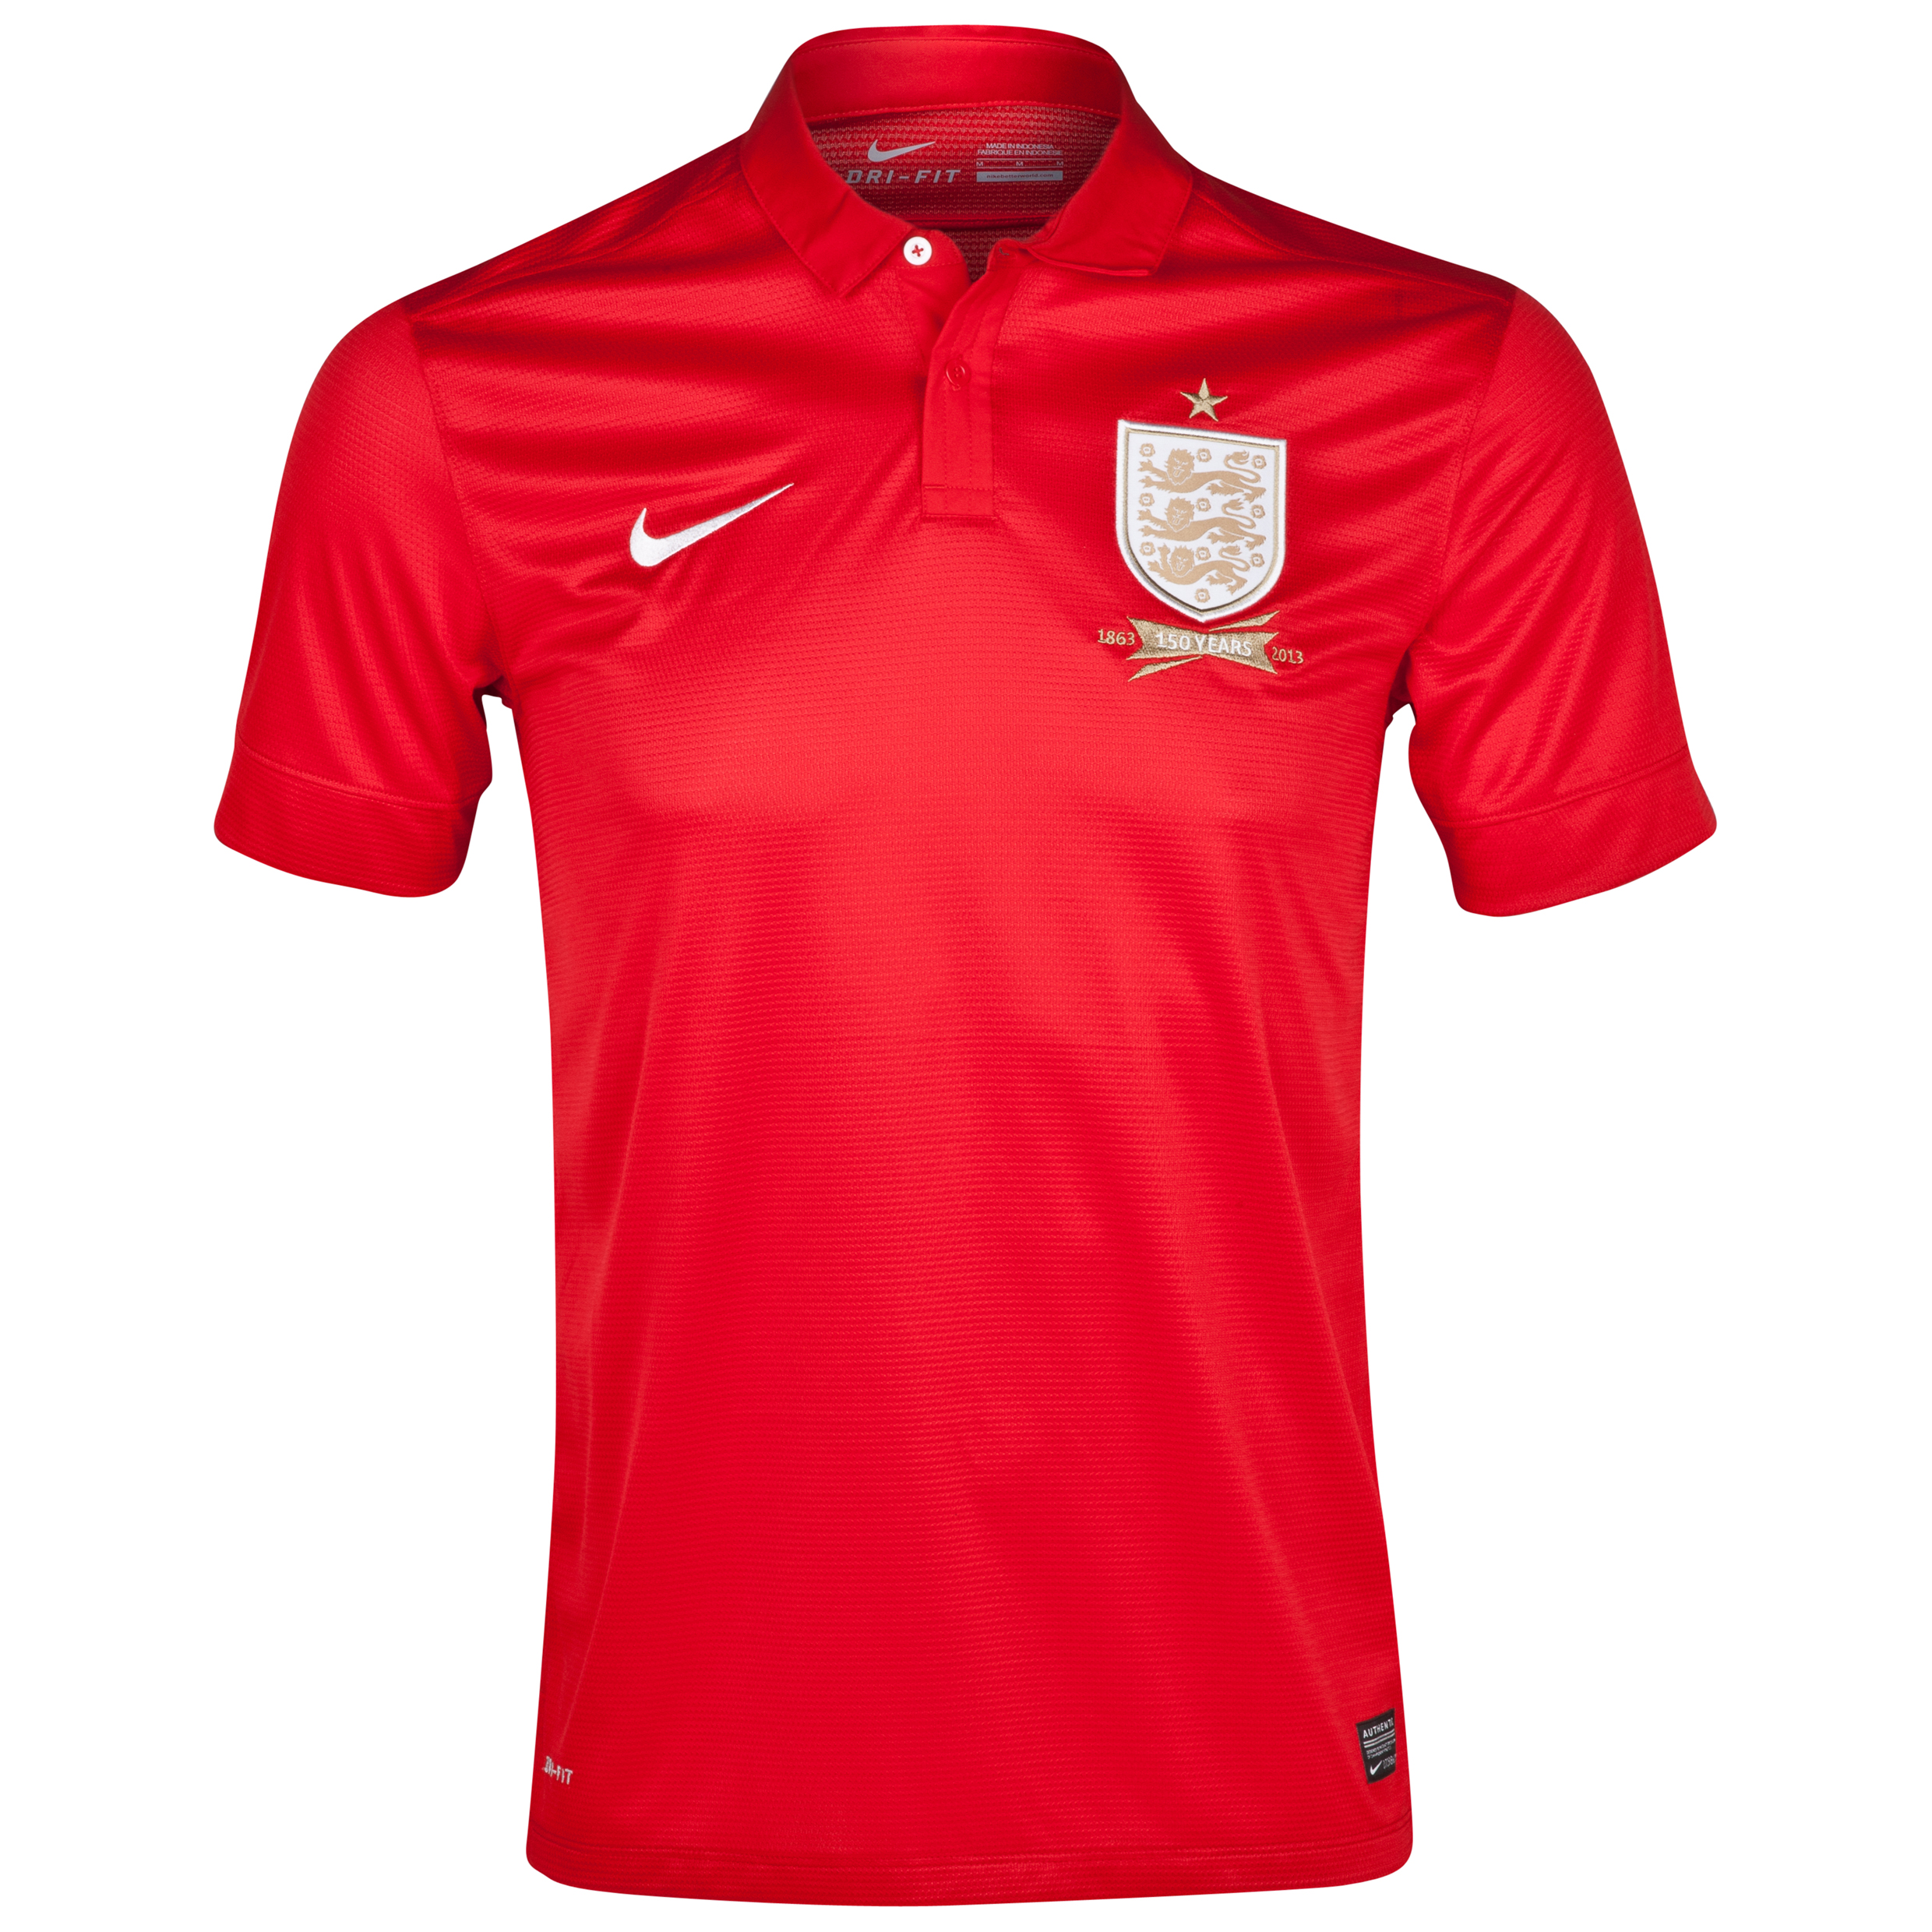 England Away Shirt 2013/14 - Mens Red